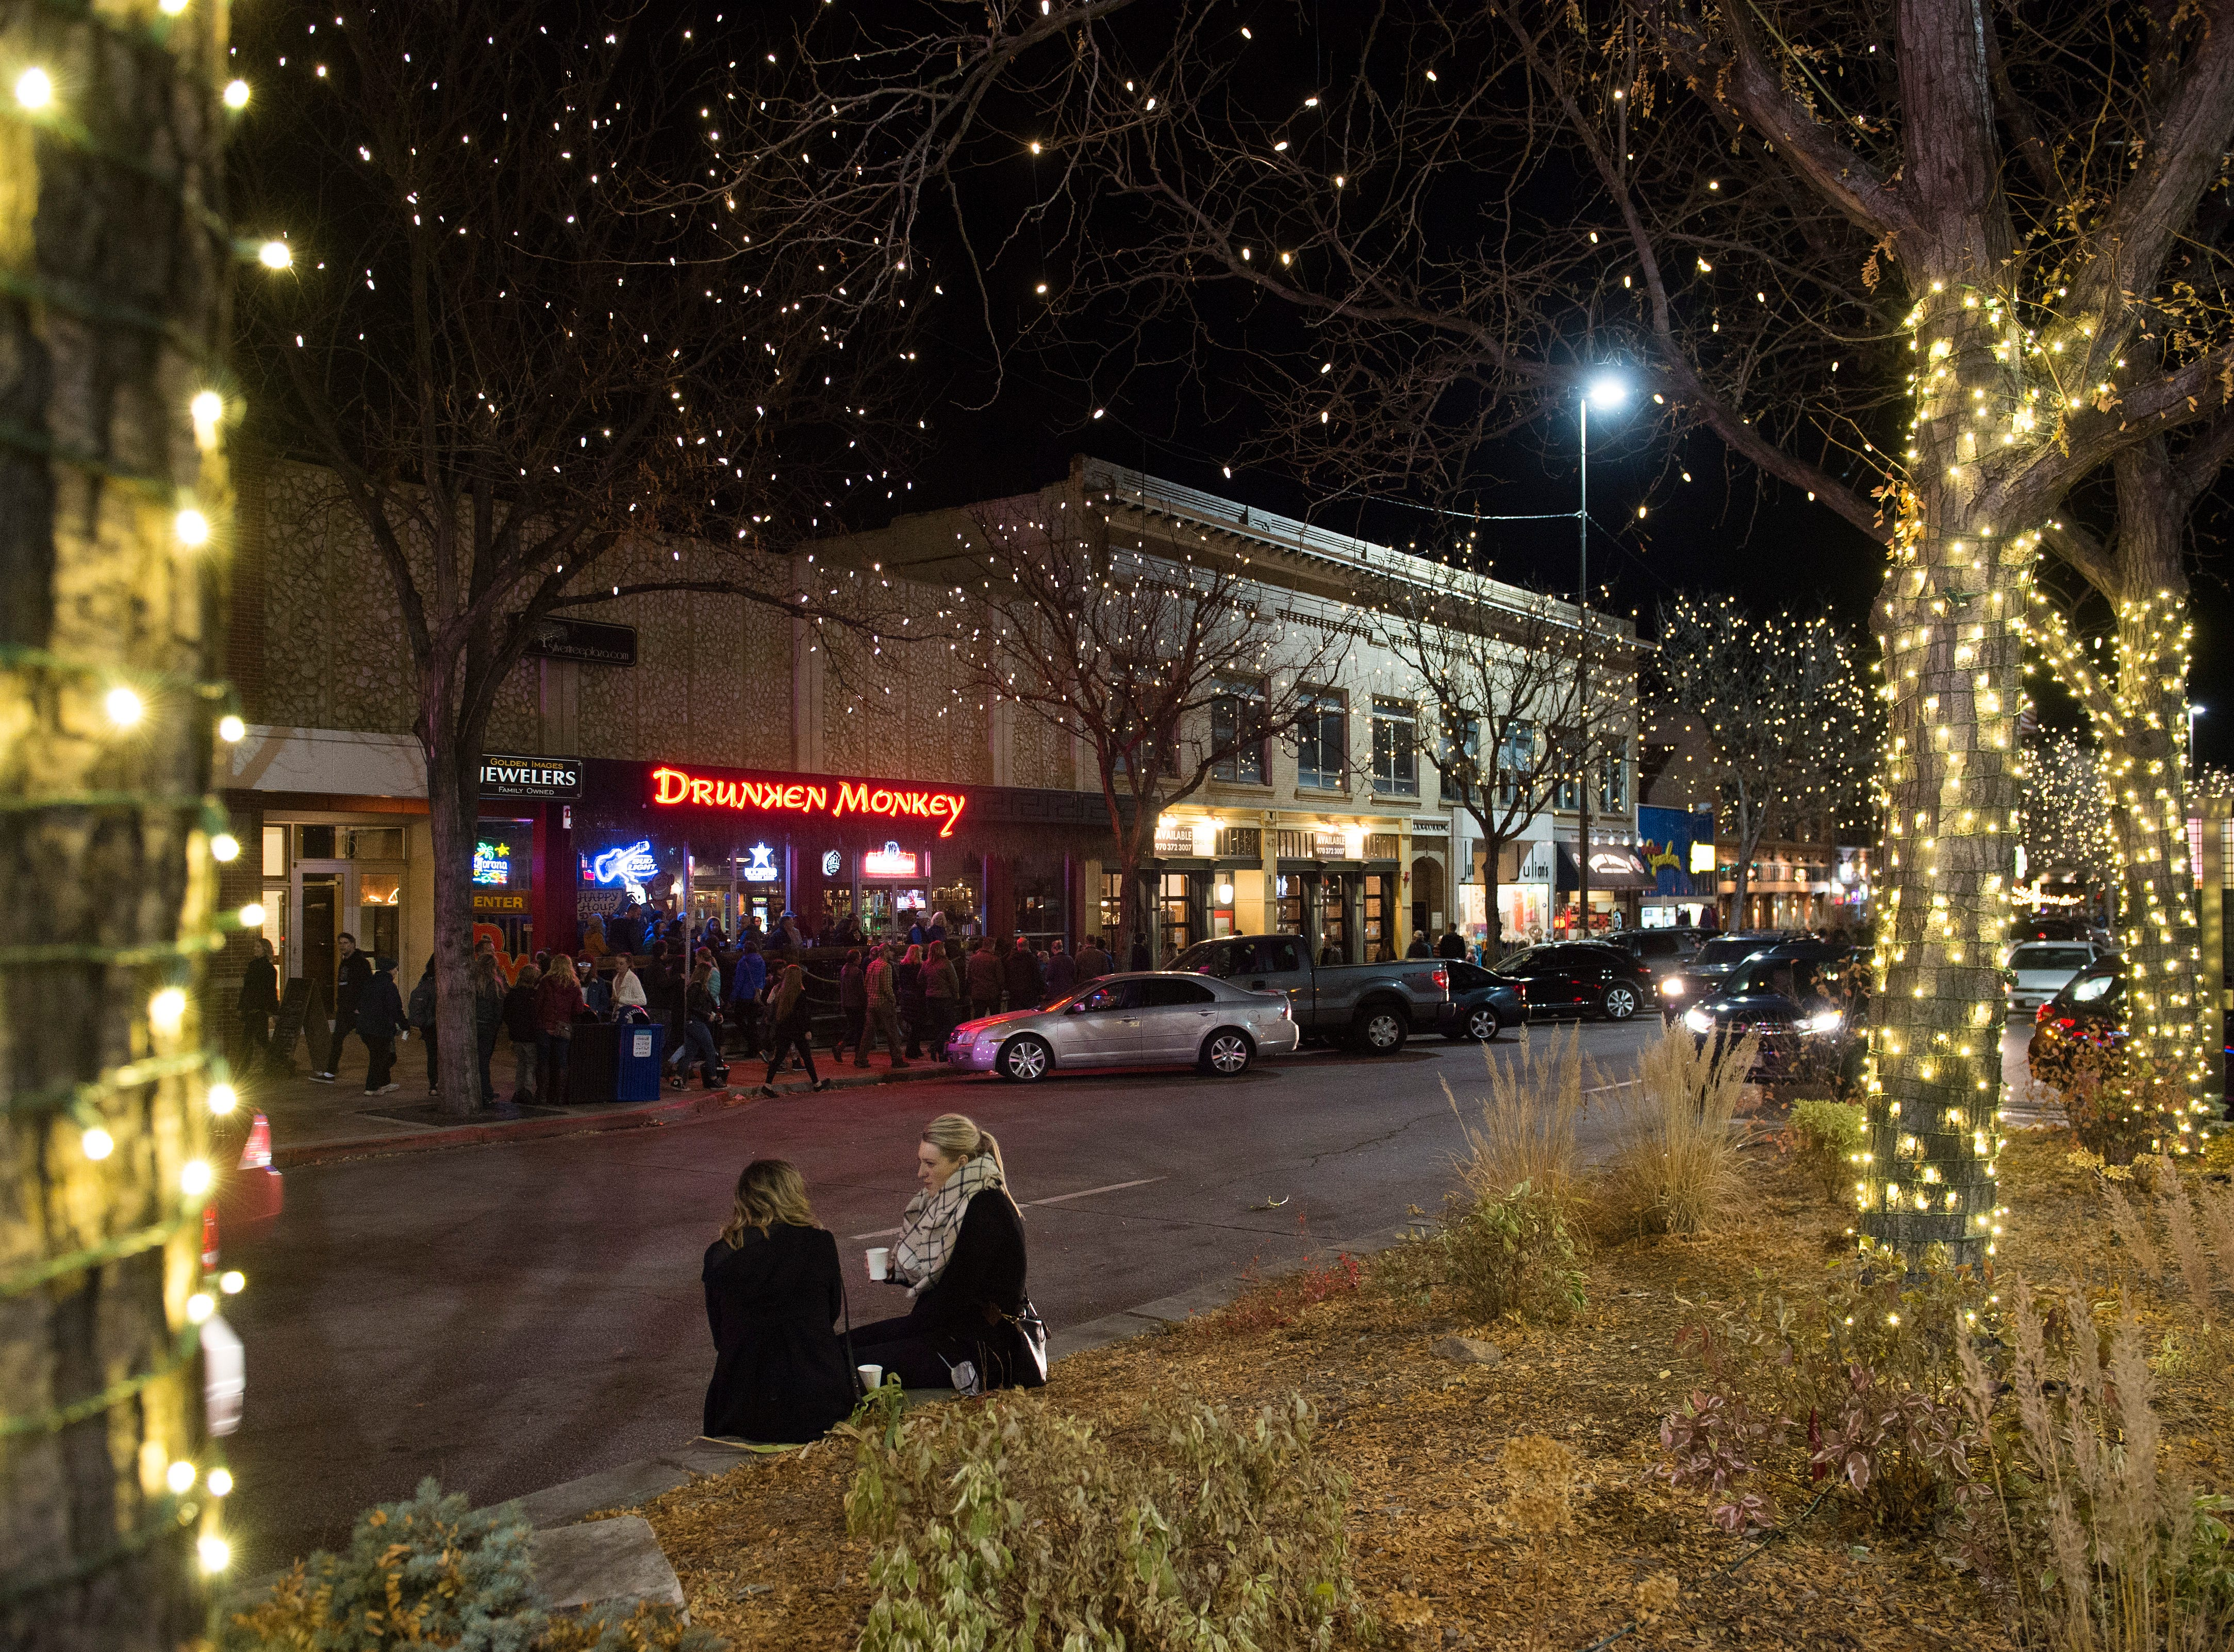 Emma Burns and Megan Sammons sip hot cocoa near College Avenue after the holiday lights are turned on in Old Town on Friday, November 2, 2018. The lights will illuminate Old Town until Feb. 14.